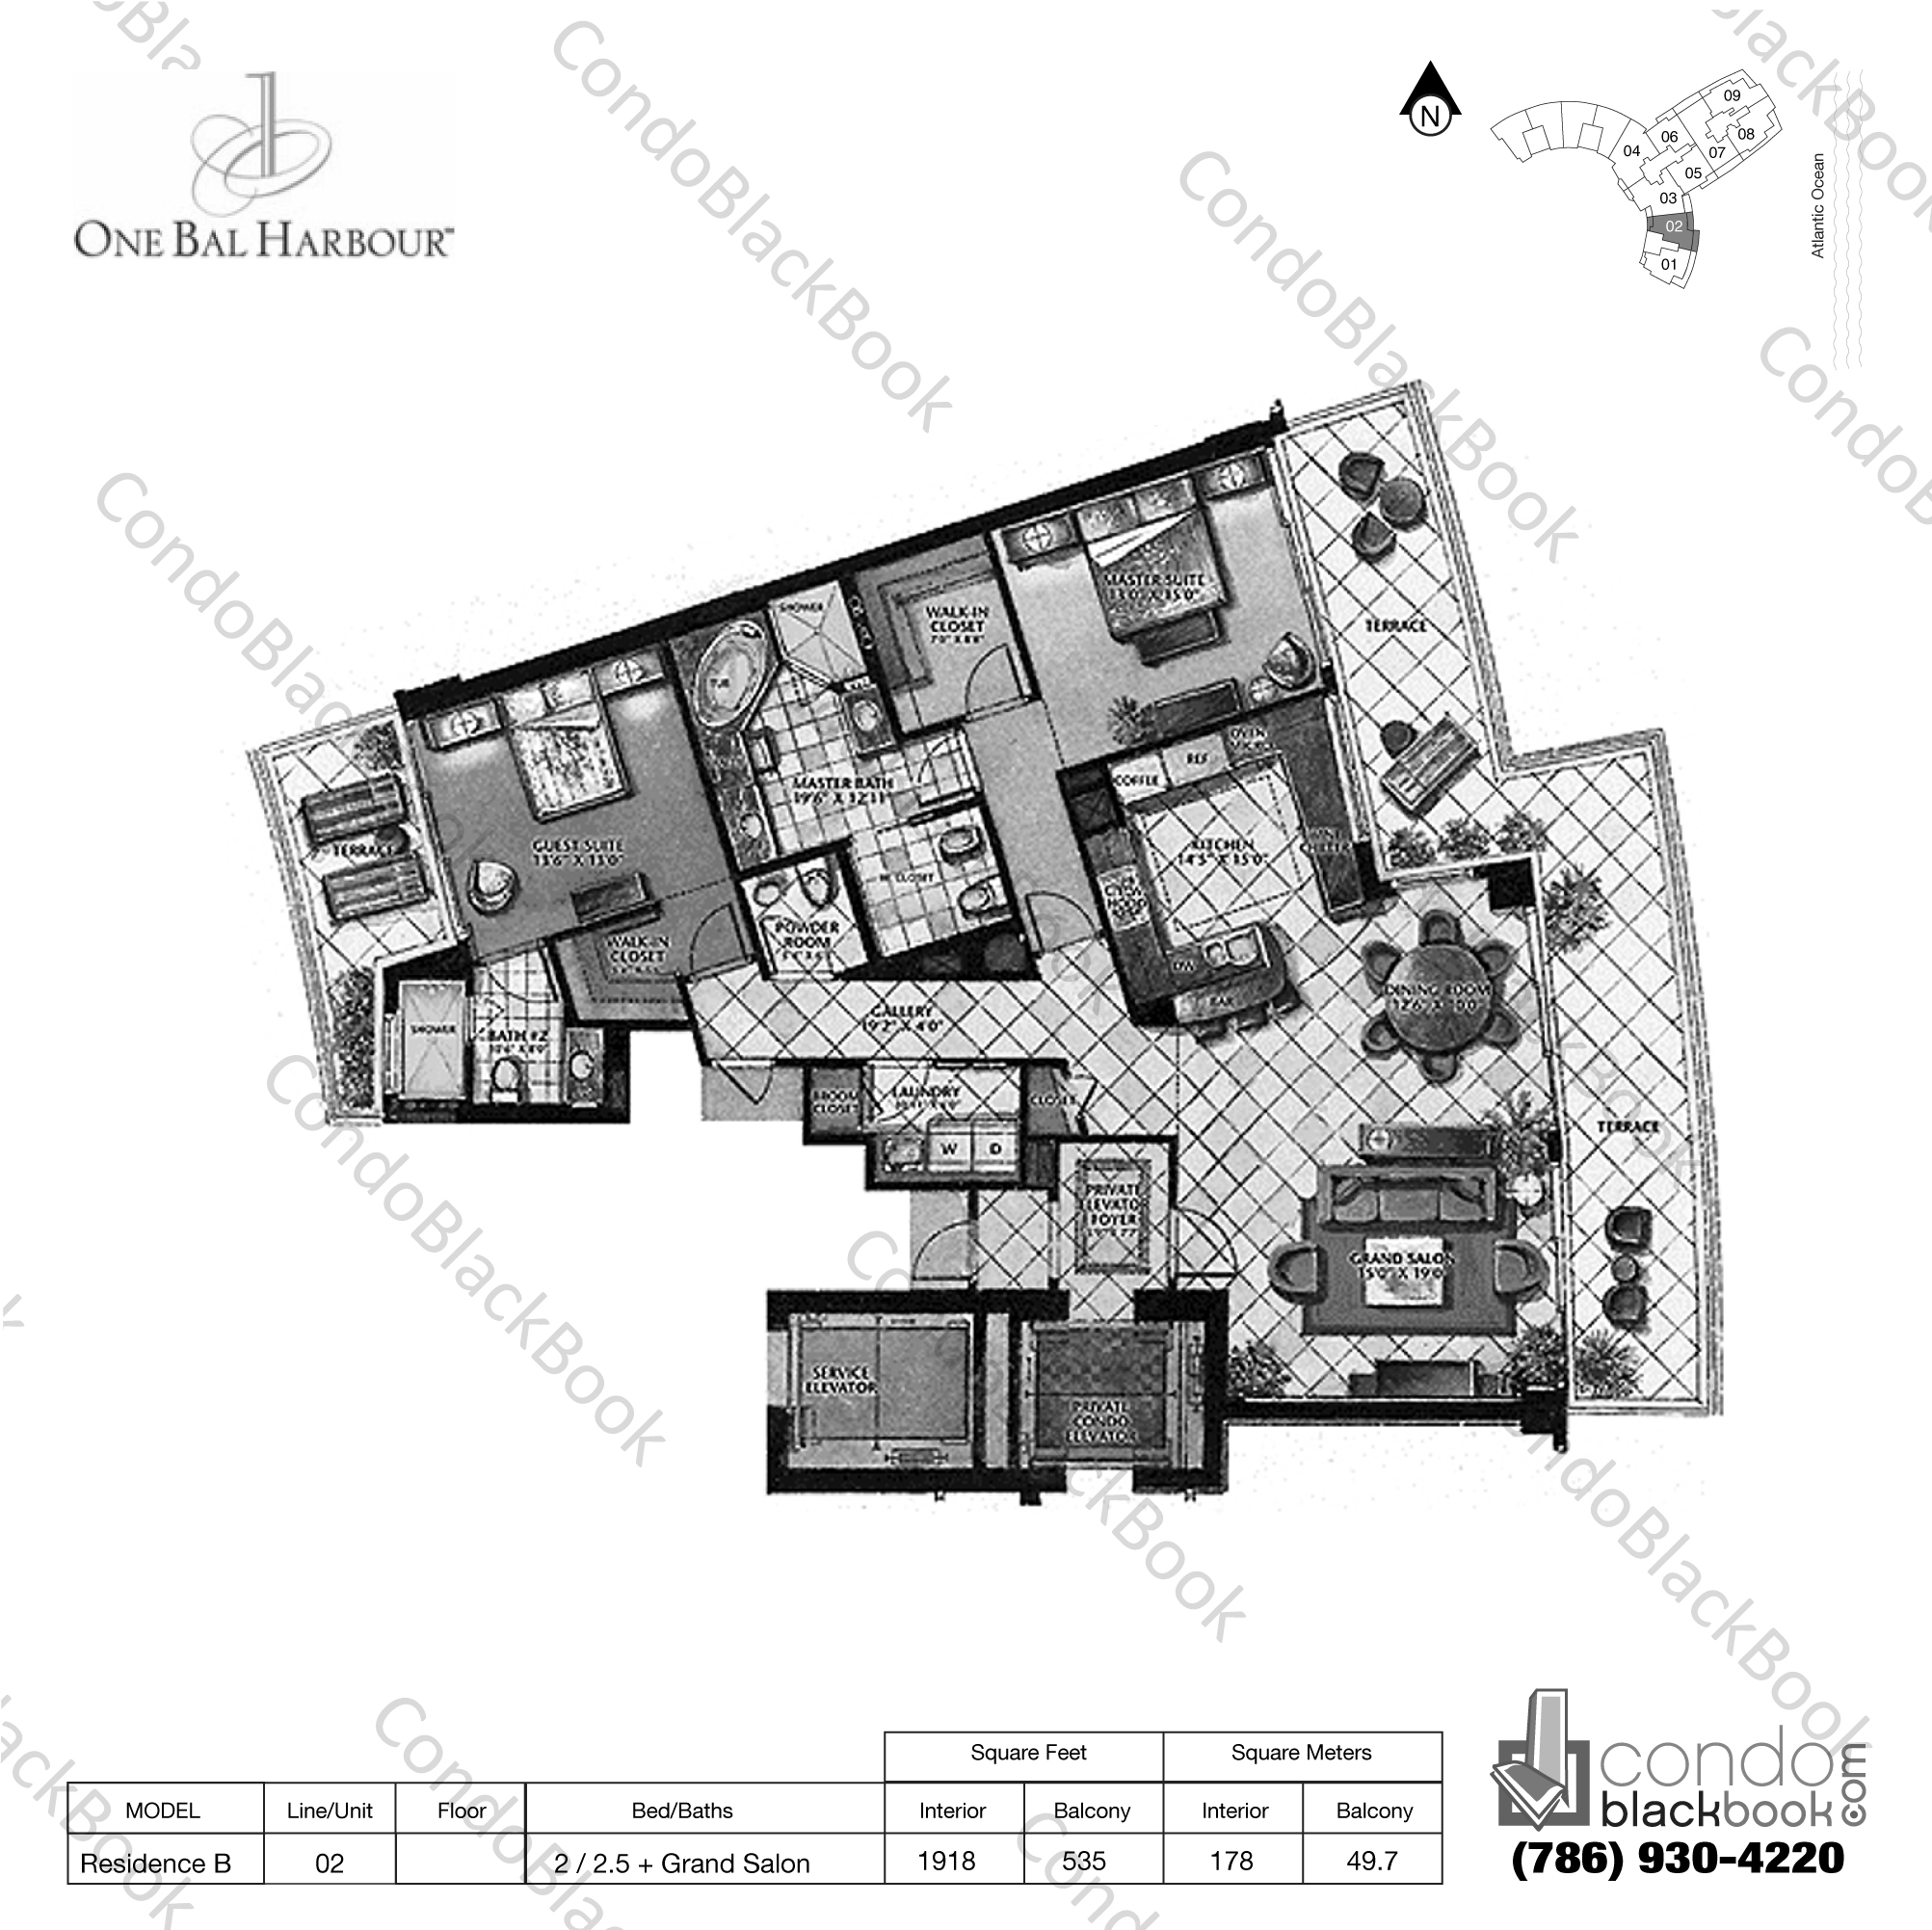 Floor plan for One Bal Harbour Bal Harbour, model Residence B, line 02, 2 / 2.5 + Grand Salon bedrooms, 1918 sq ft